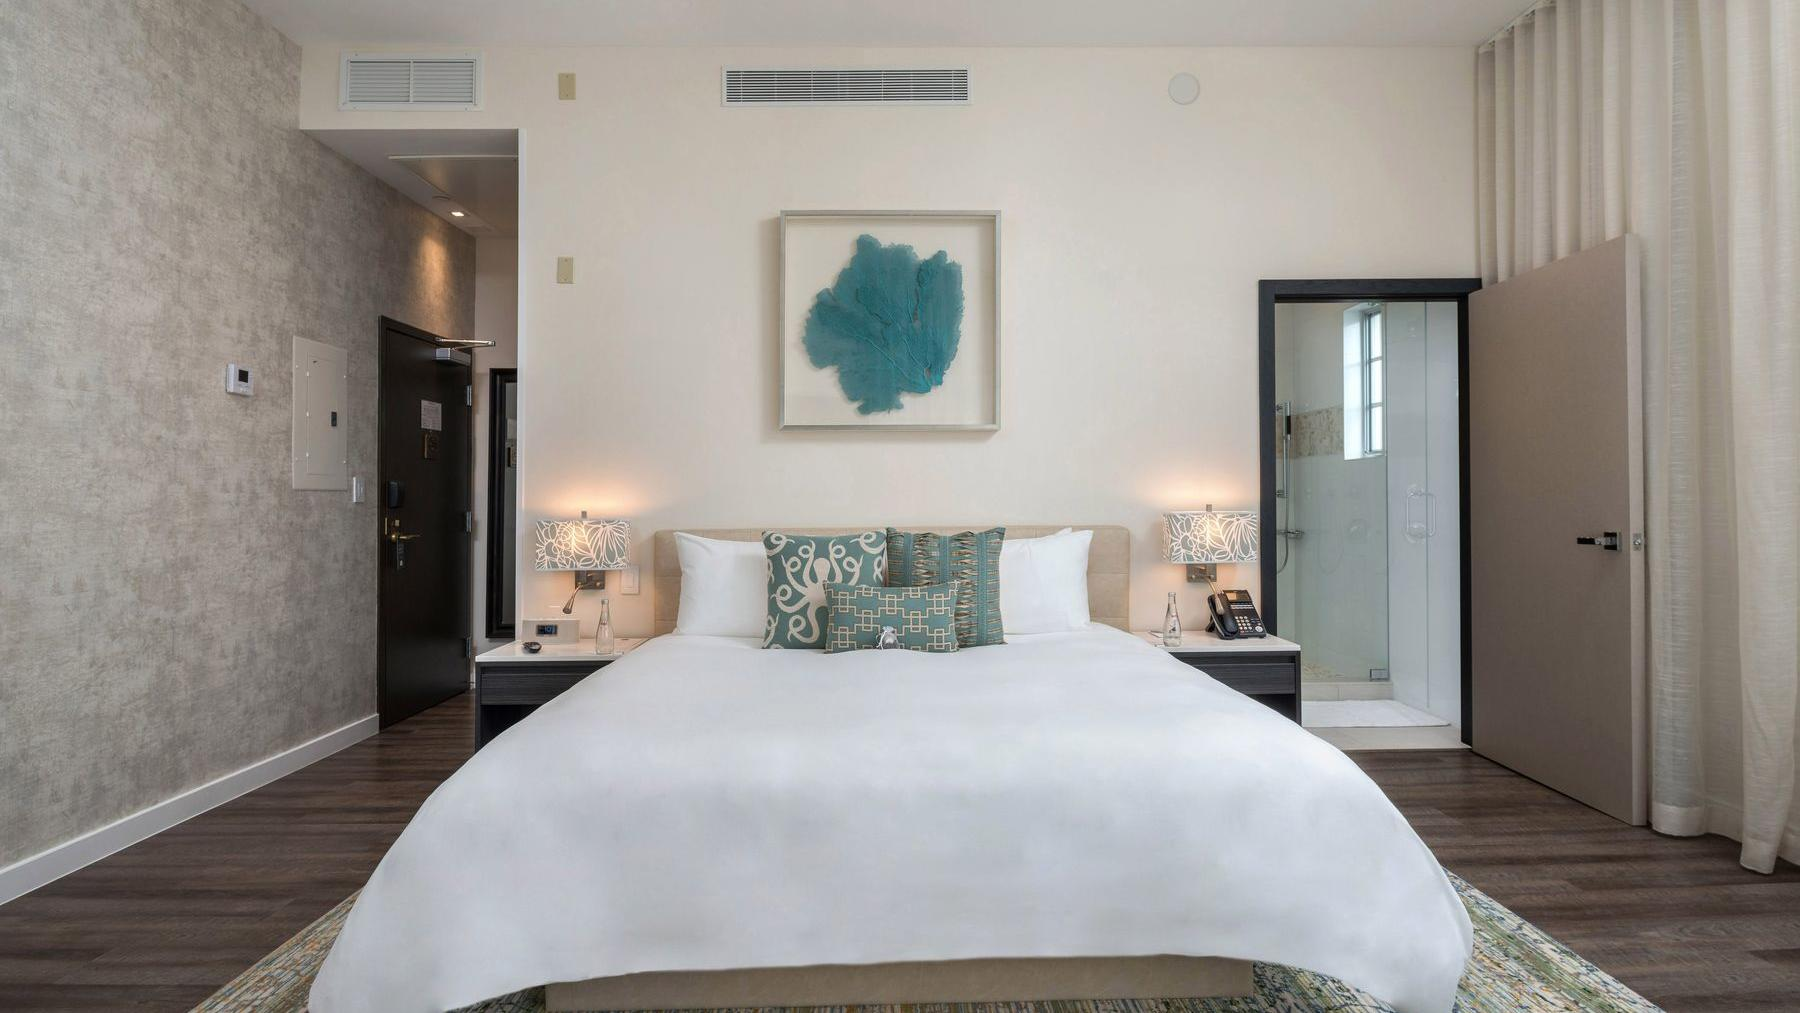 bed with white sheets and painting above